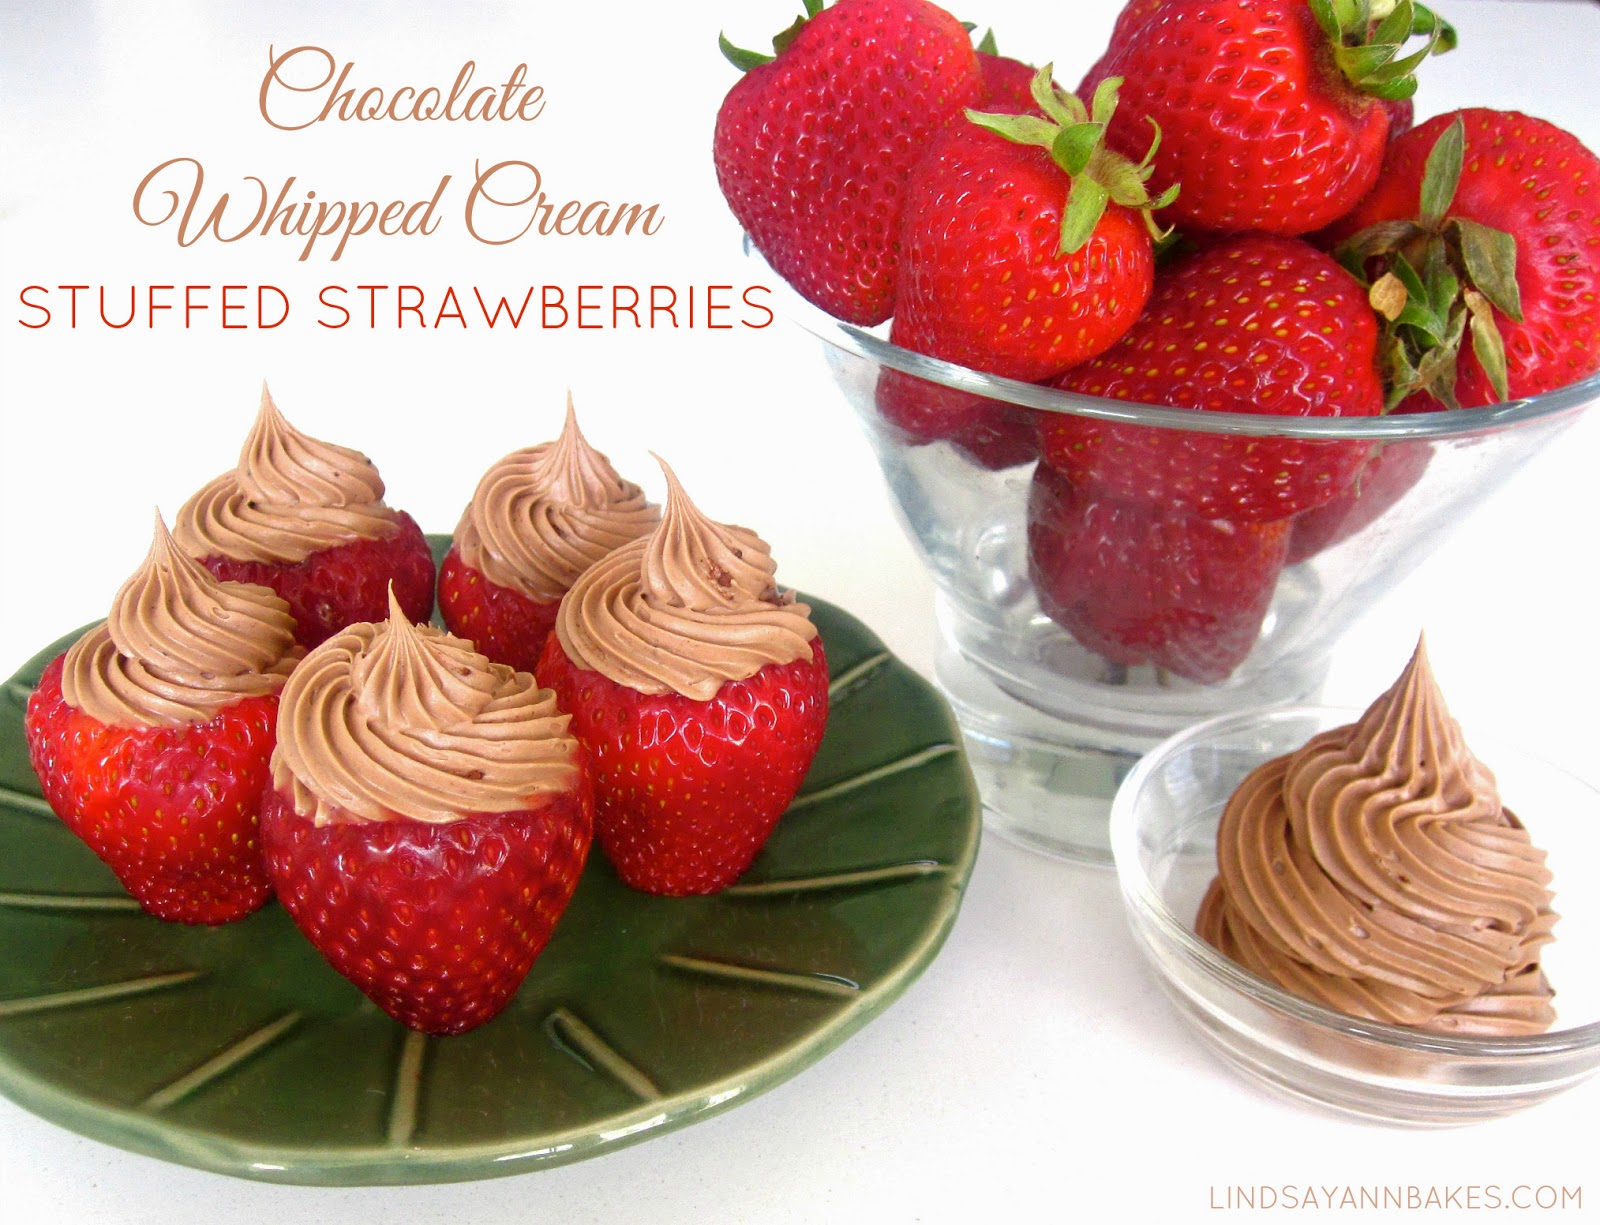 I Love The Look Of The Mousse Piped Into Strawberries Like I Did In My No Bake Cheesecake Stuffed Strawberries So I Just Had To Create A Variation On The